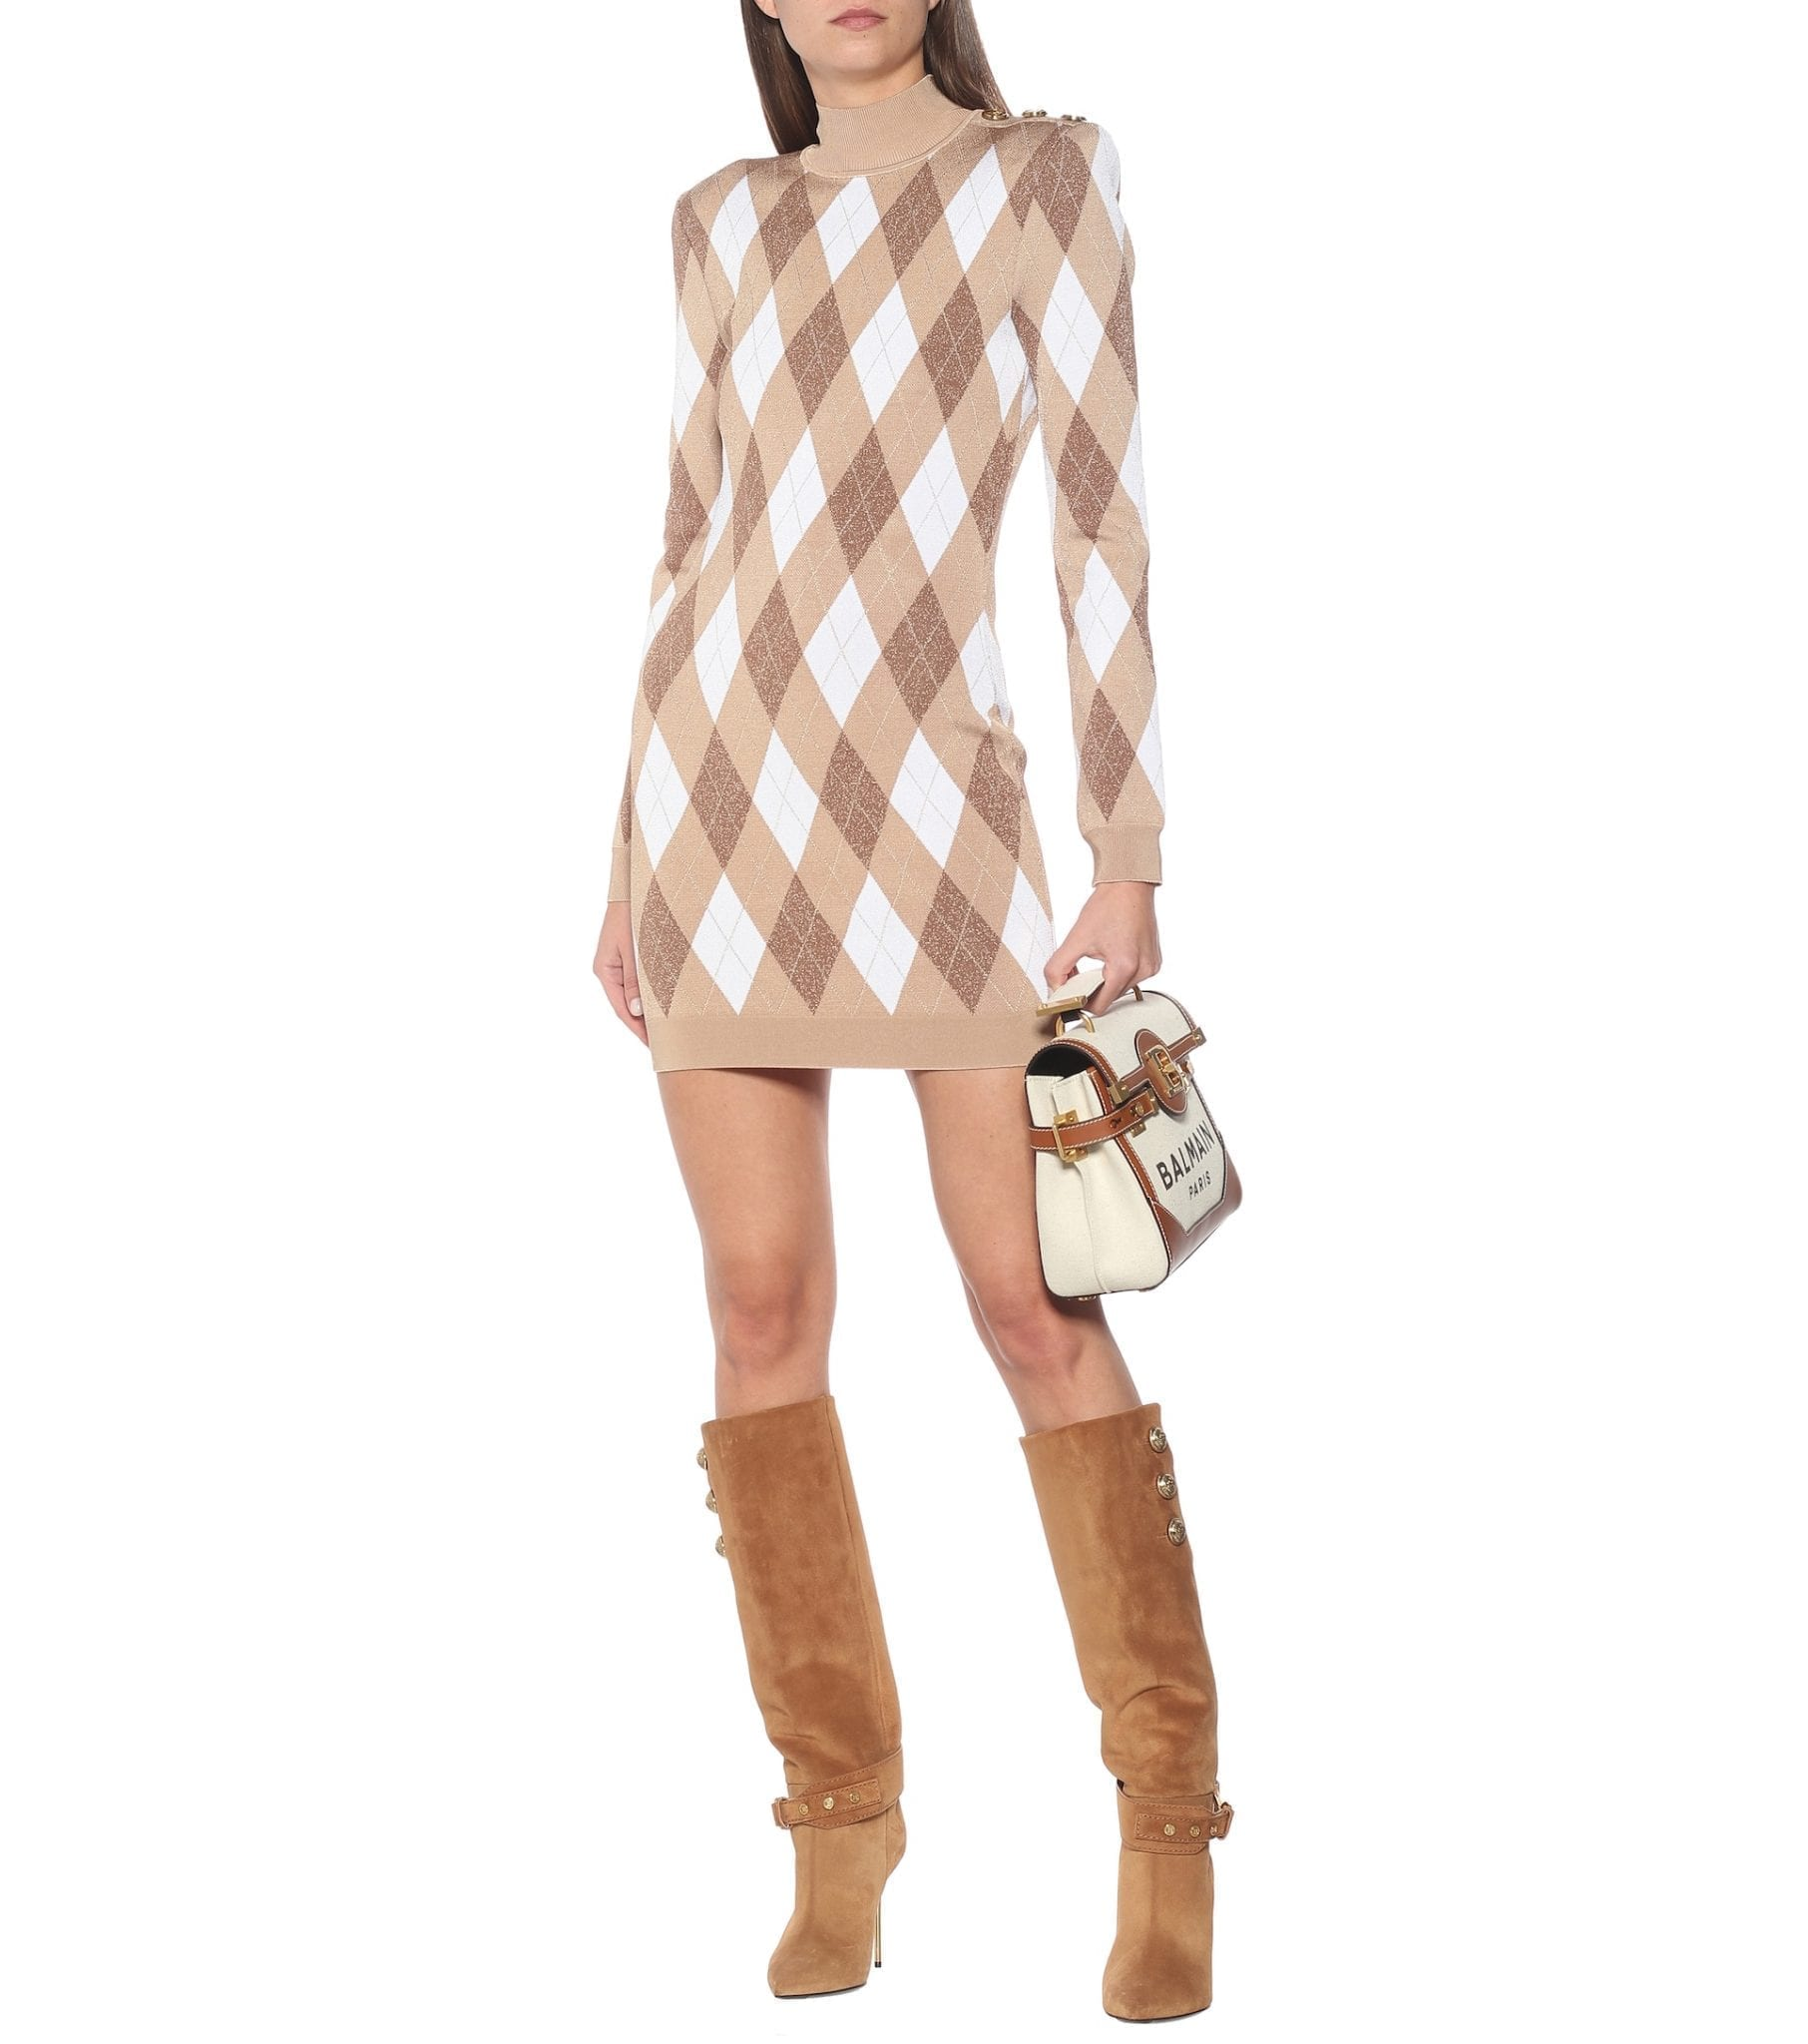 BALMAIN Argyle Knit Mini Dress